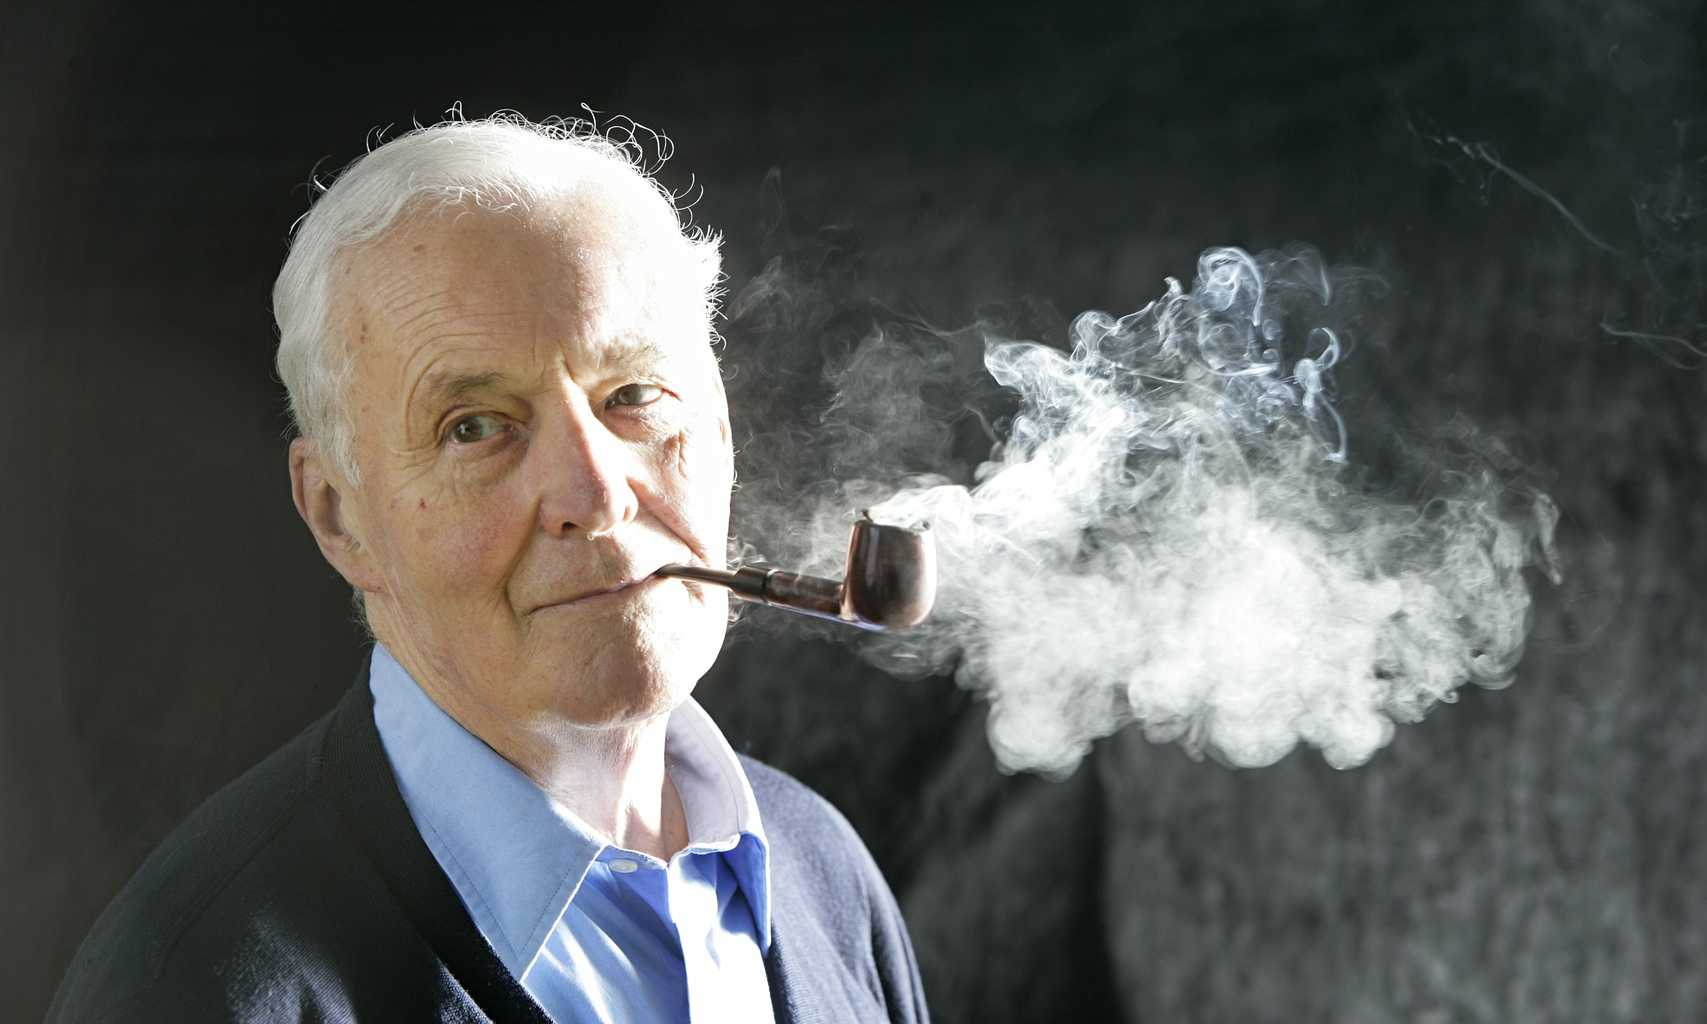 film reviews | movies | features | BRWC Tony Benn: Will And Testament, Town Hall Screening & Q&A Tour